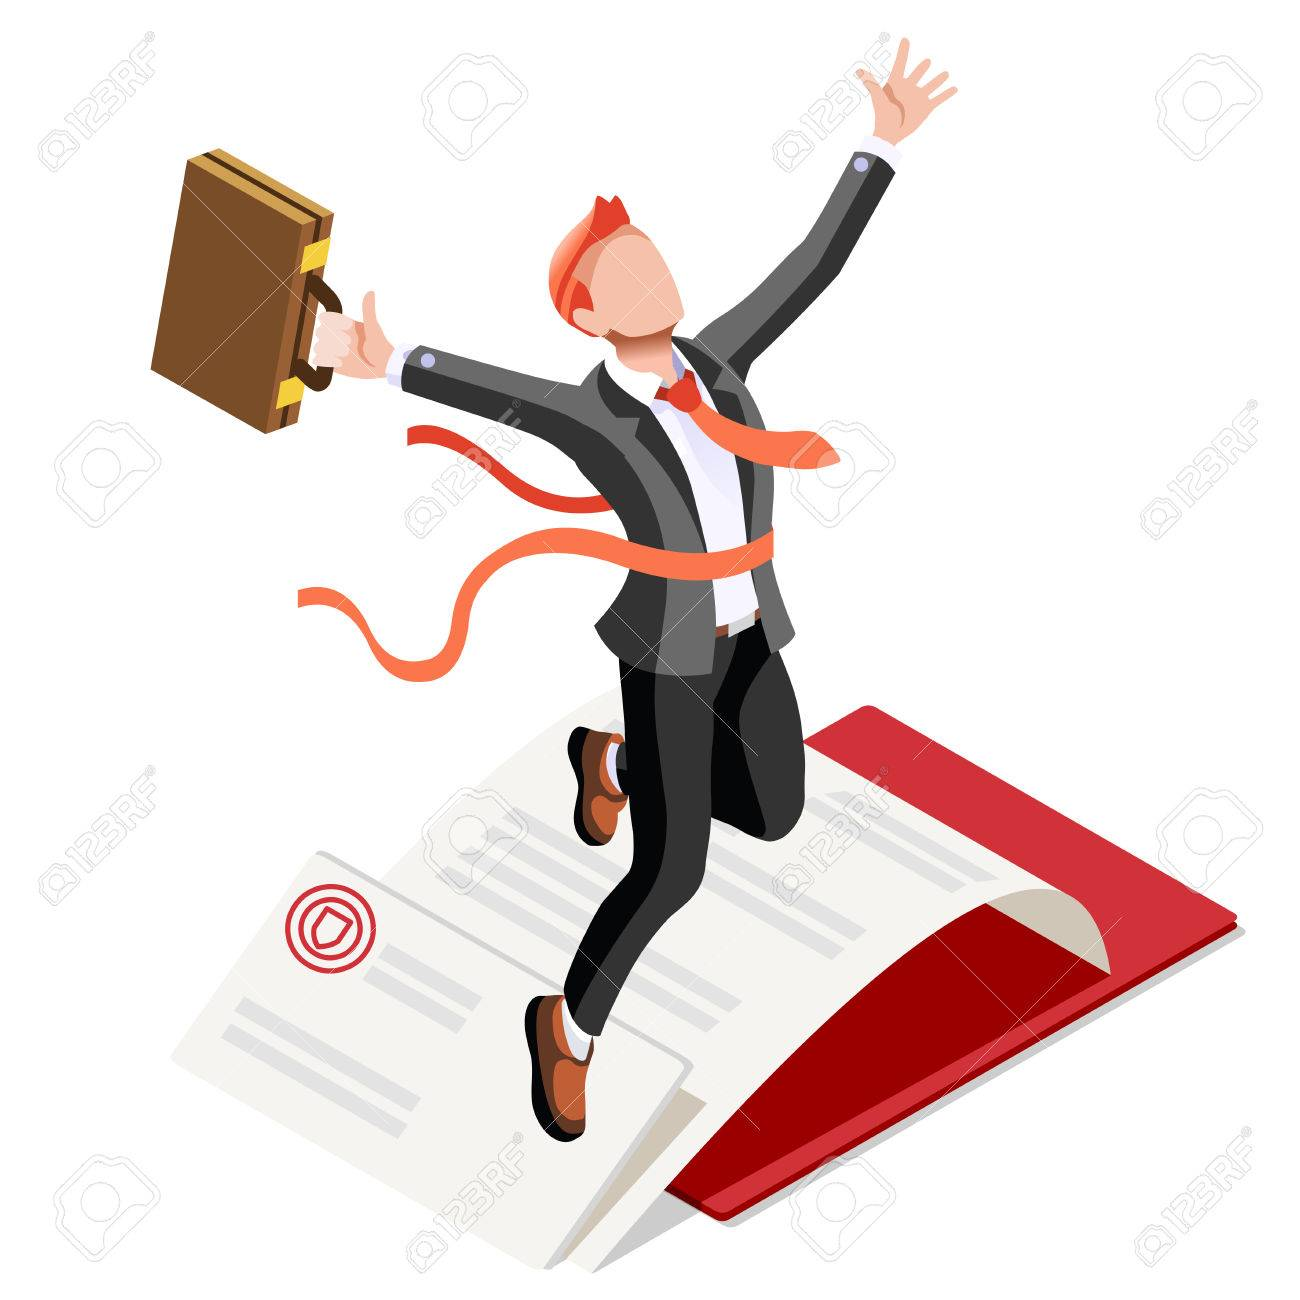 Business concept infographic vector design. Businessperson 3D character flat ambitious man. Job ambition changing role. Winning Startup group training